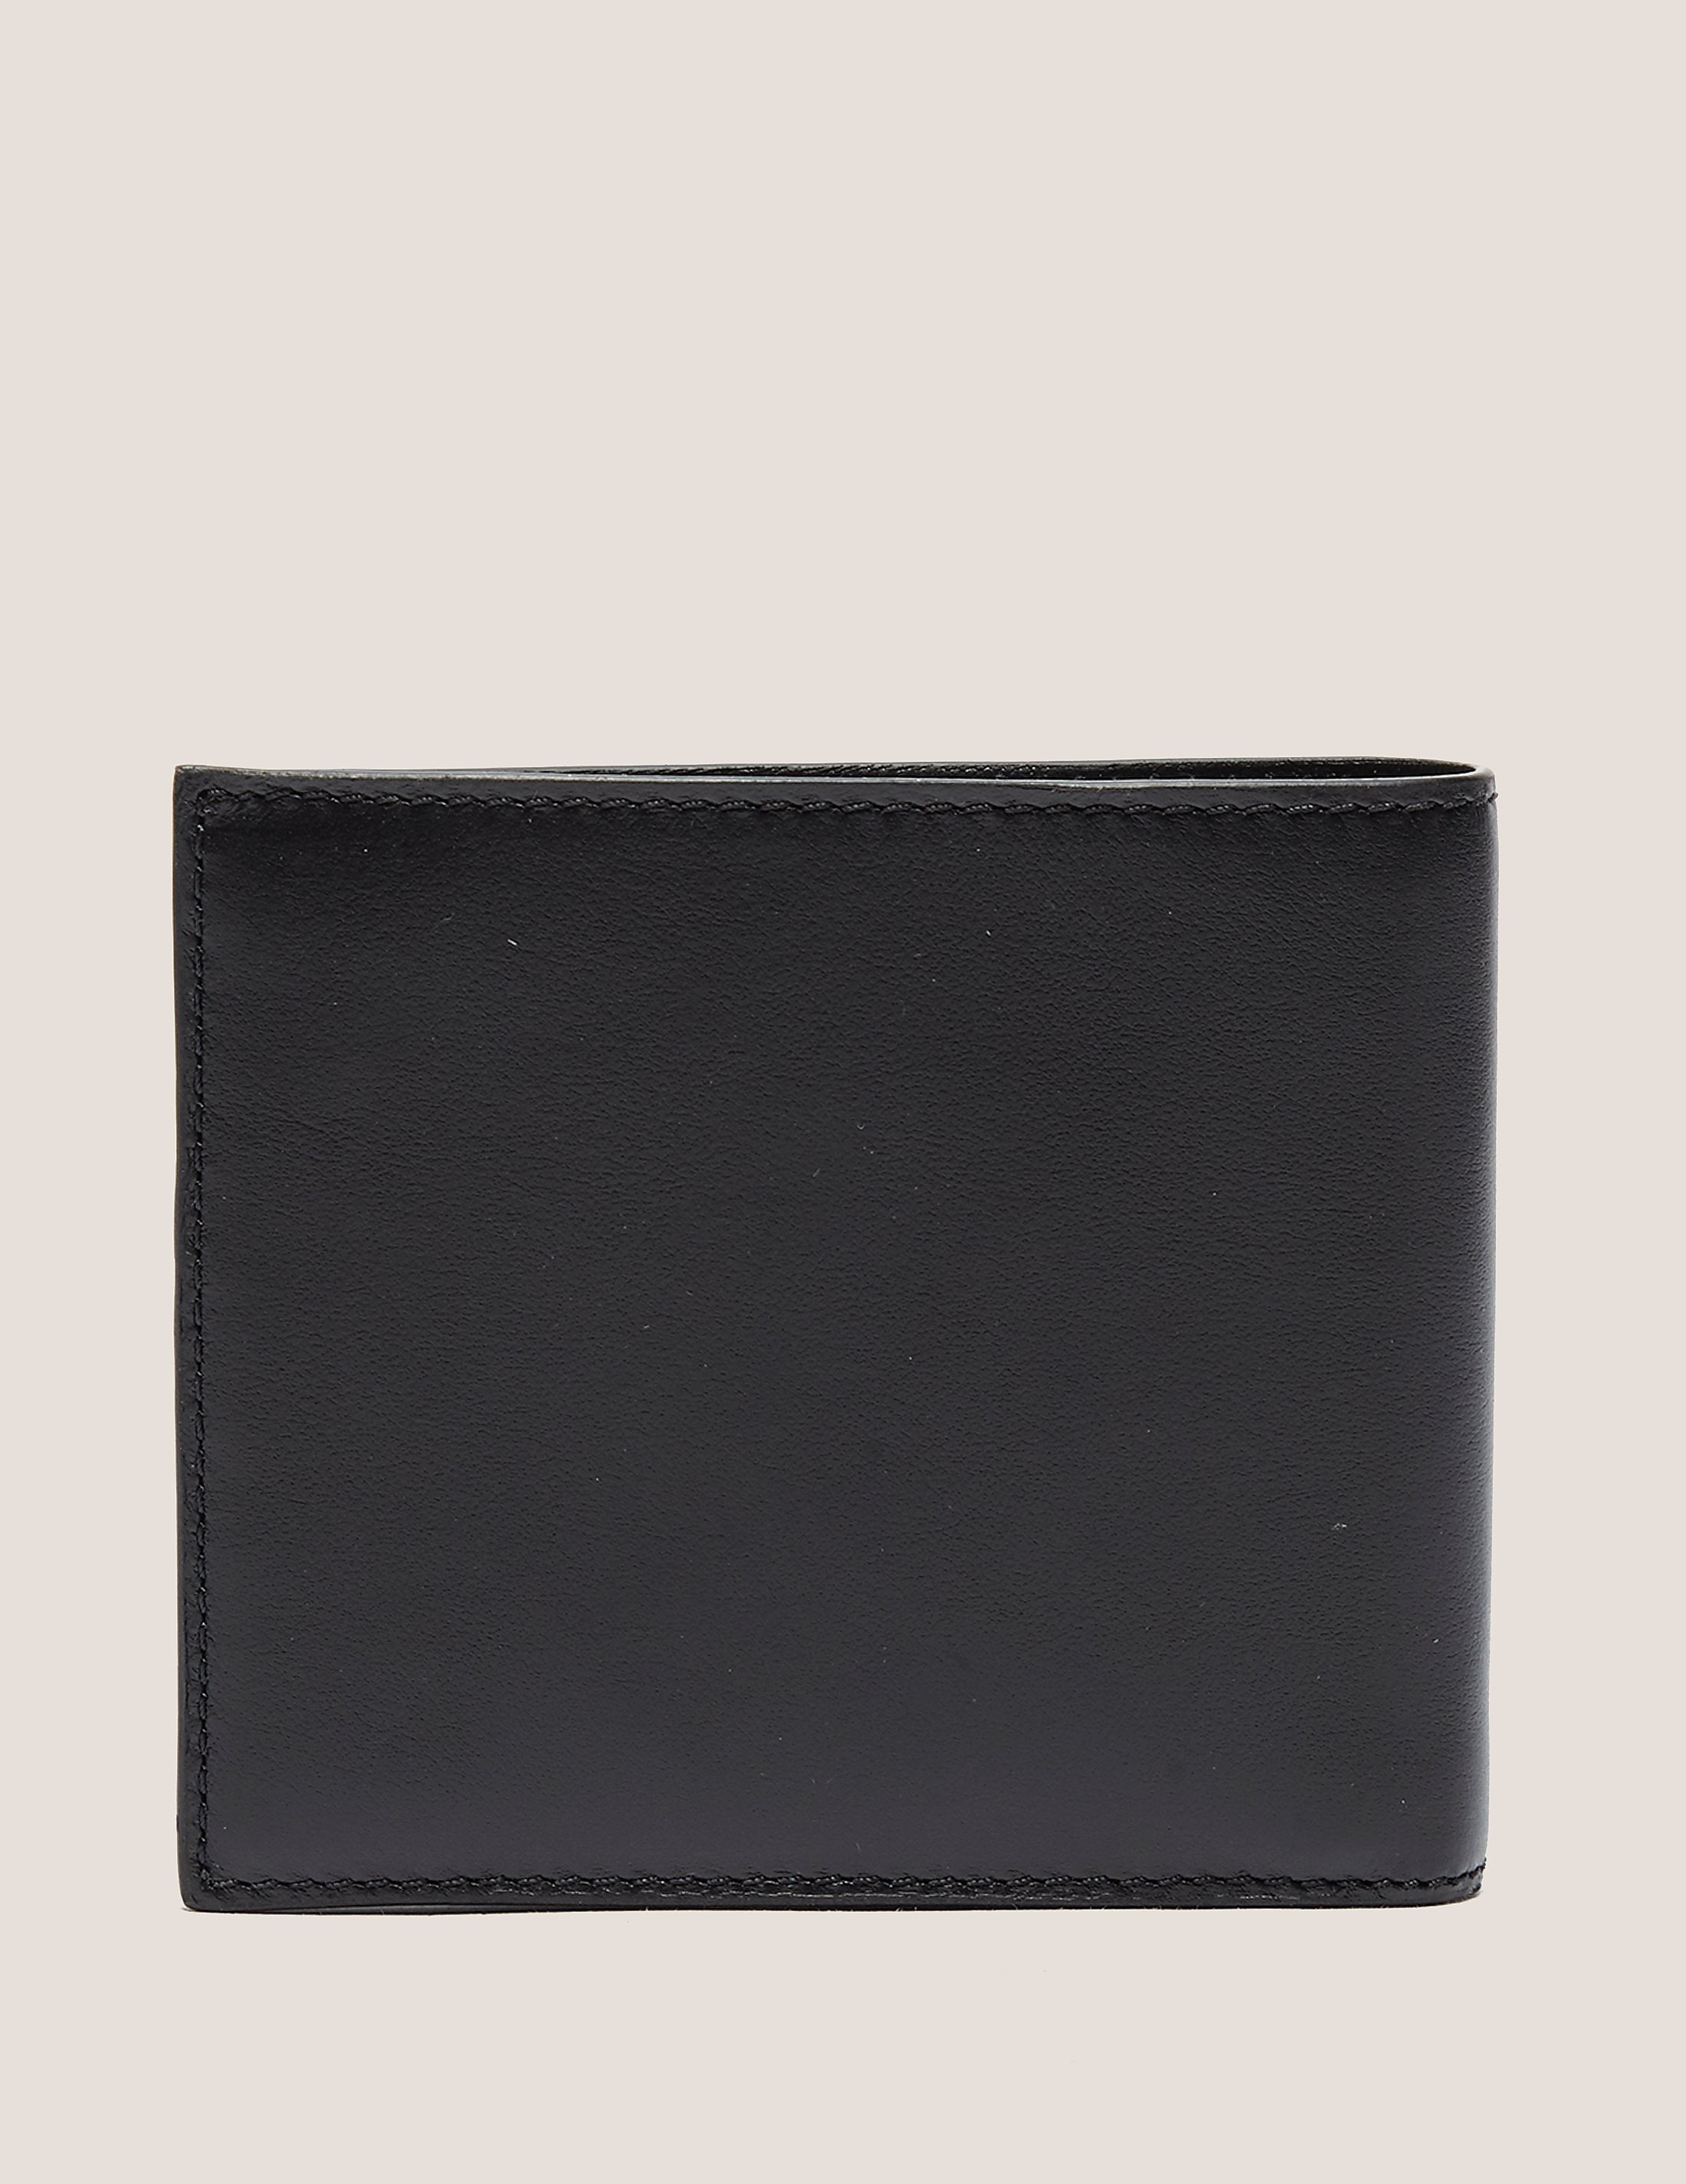 Paul Smith Contrast Piping Billfold Wallet